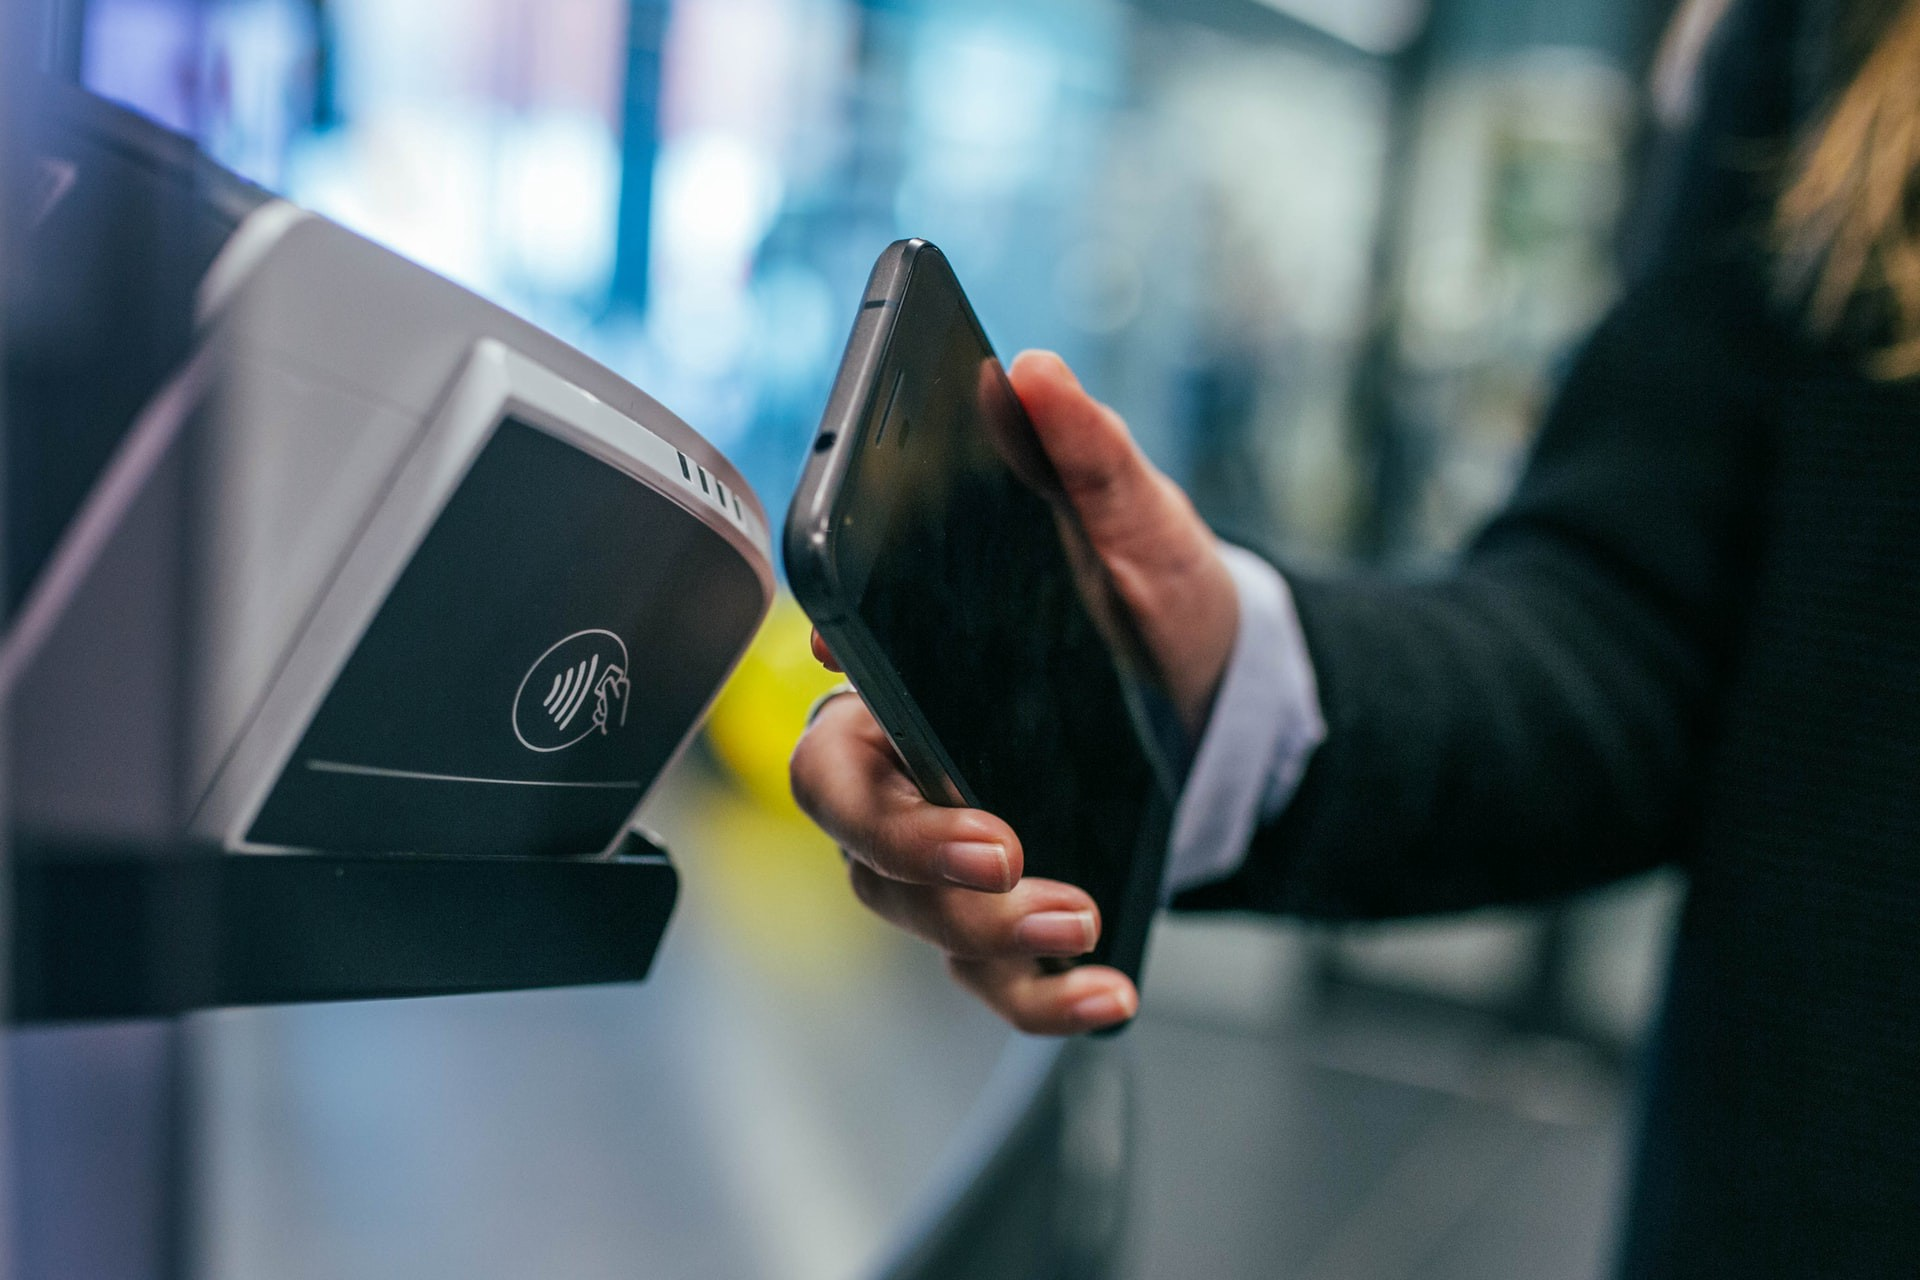 Colour photograph of a woman holding her smartphone up to a payment terminal.